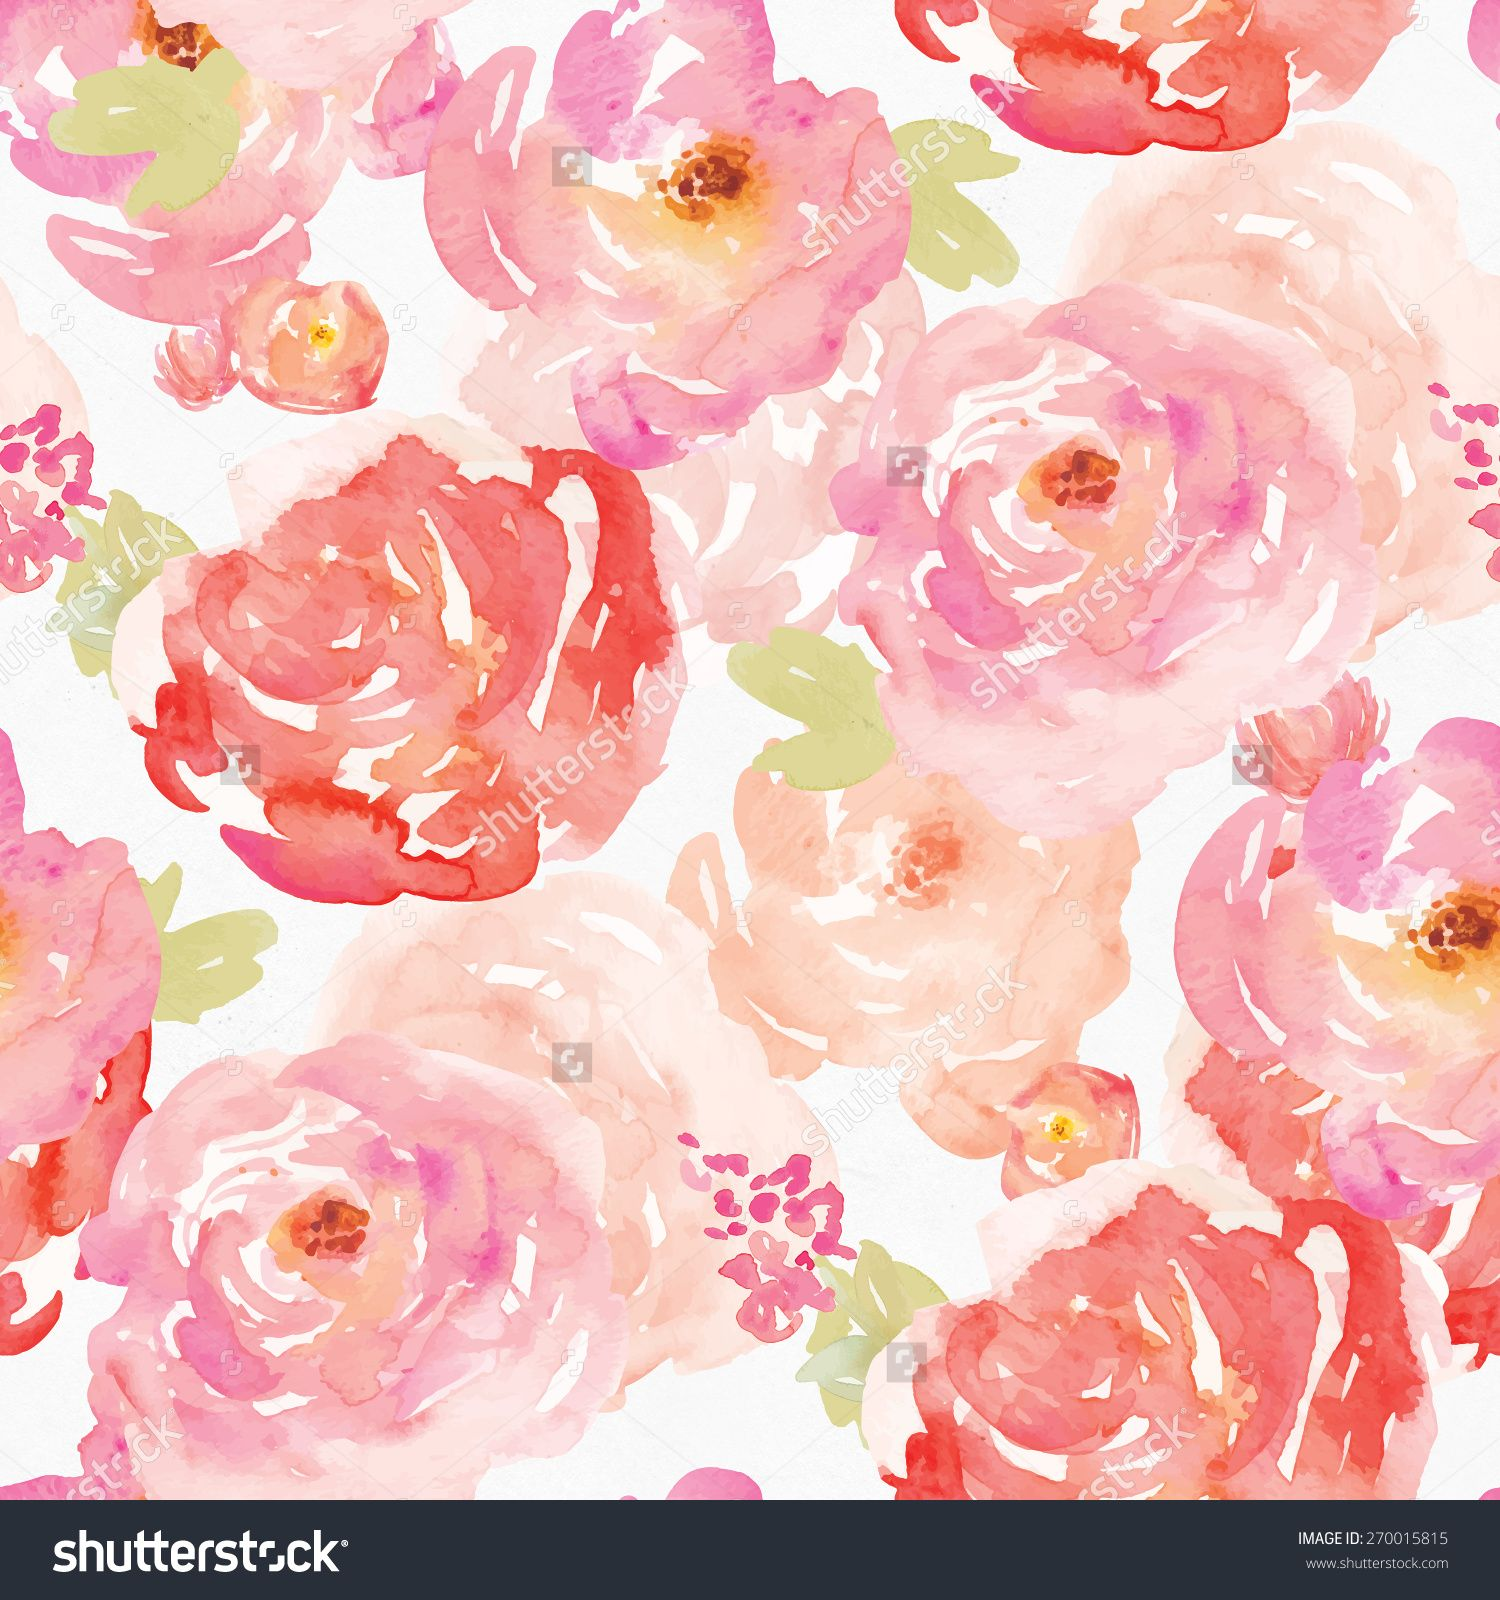 Colorful Watercolor Floral Background Pattern. Repeating